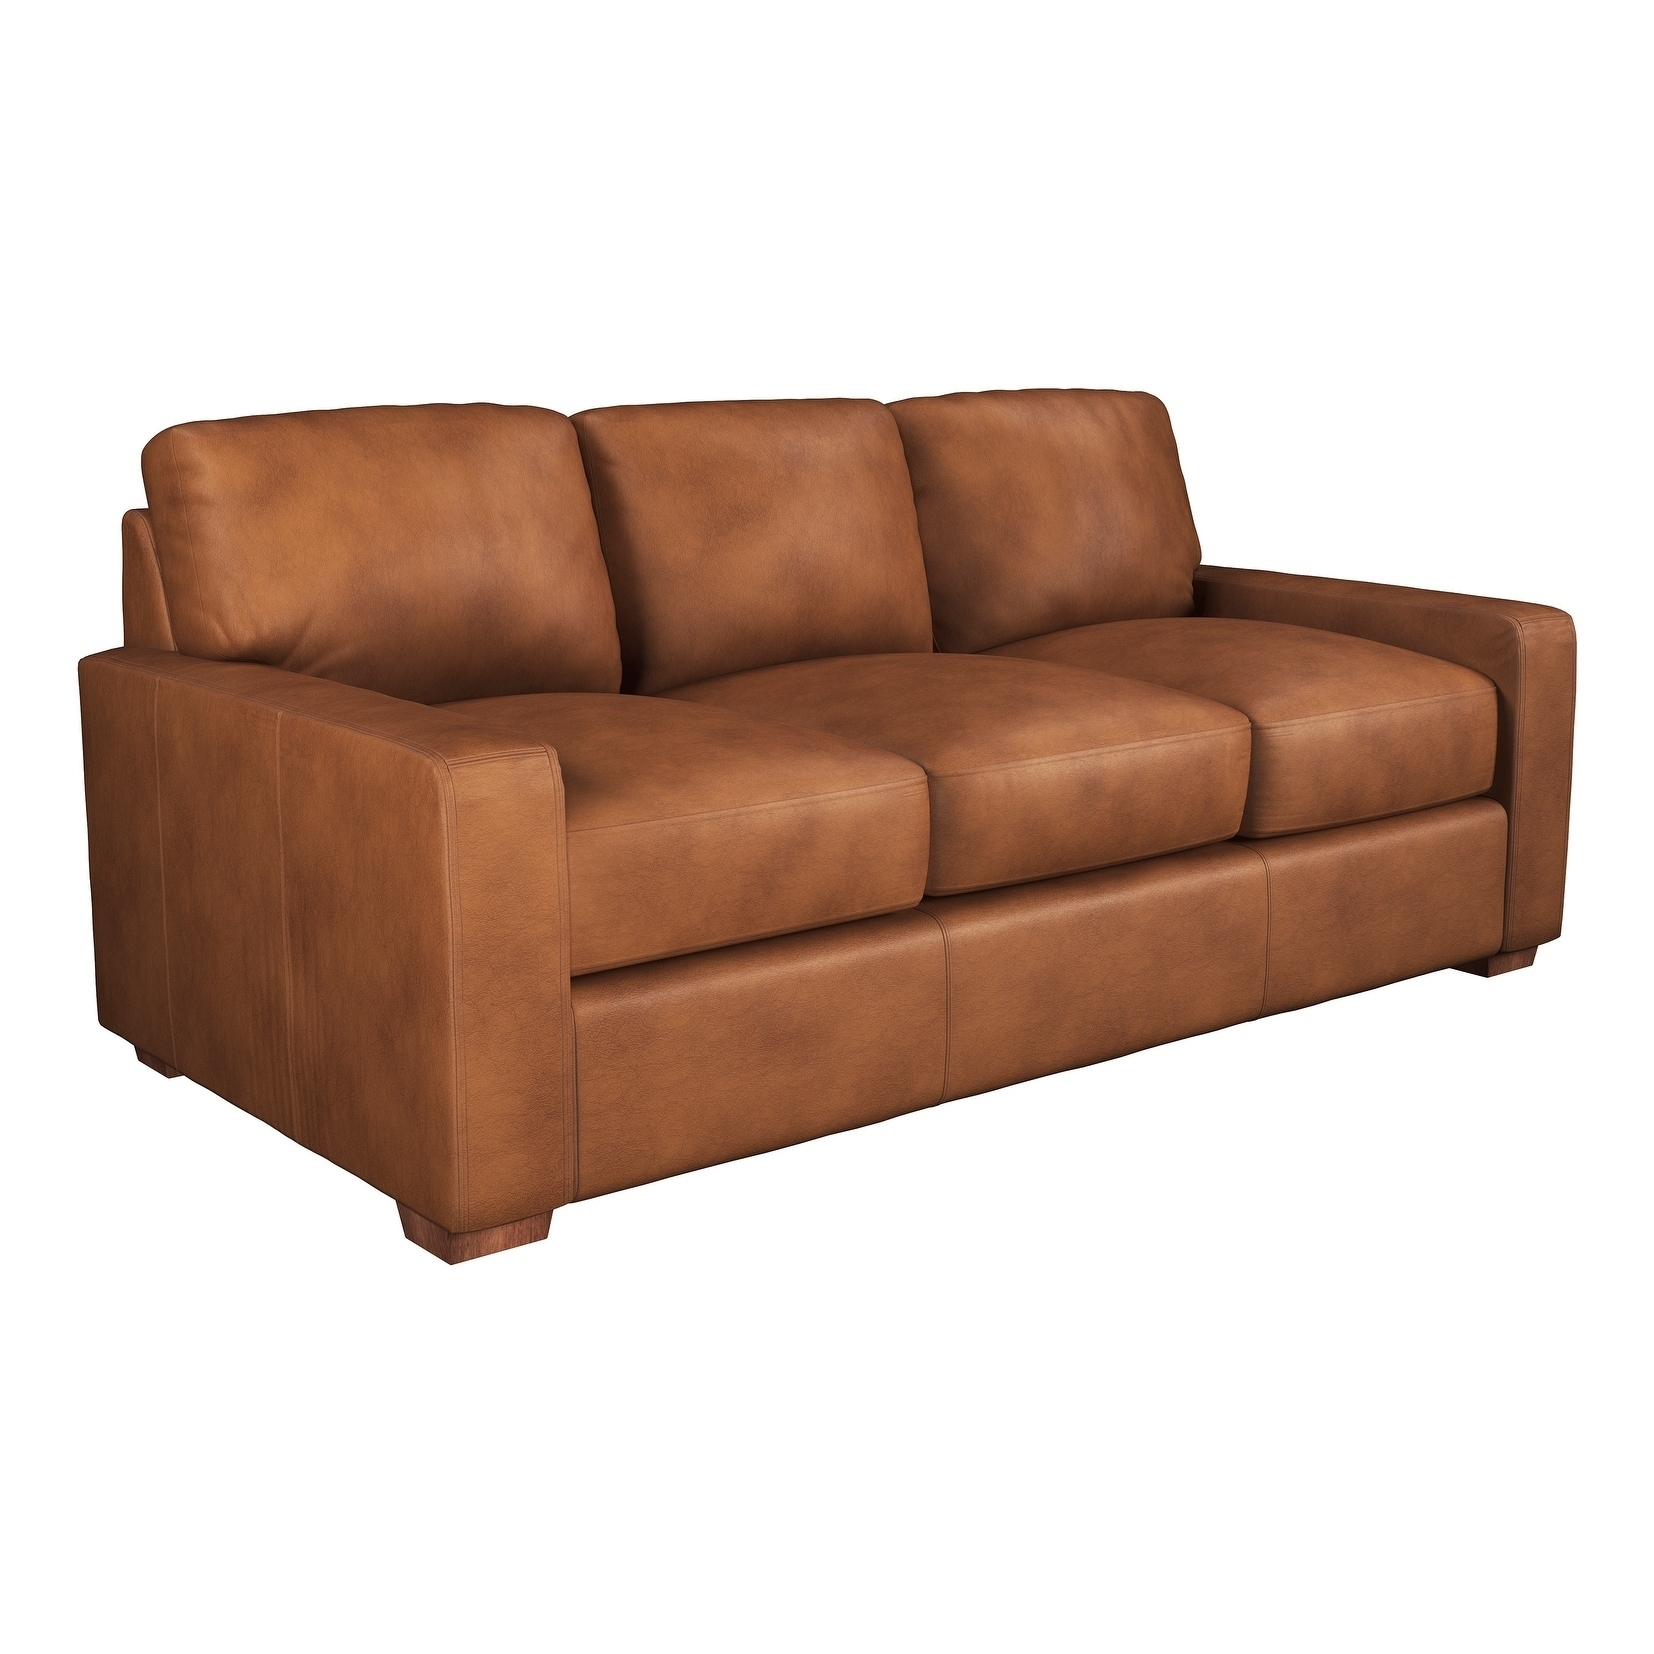 Made To Order Maxim 100 Top Grain Leather Queen Sleeper Sofa